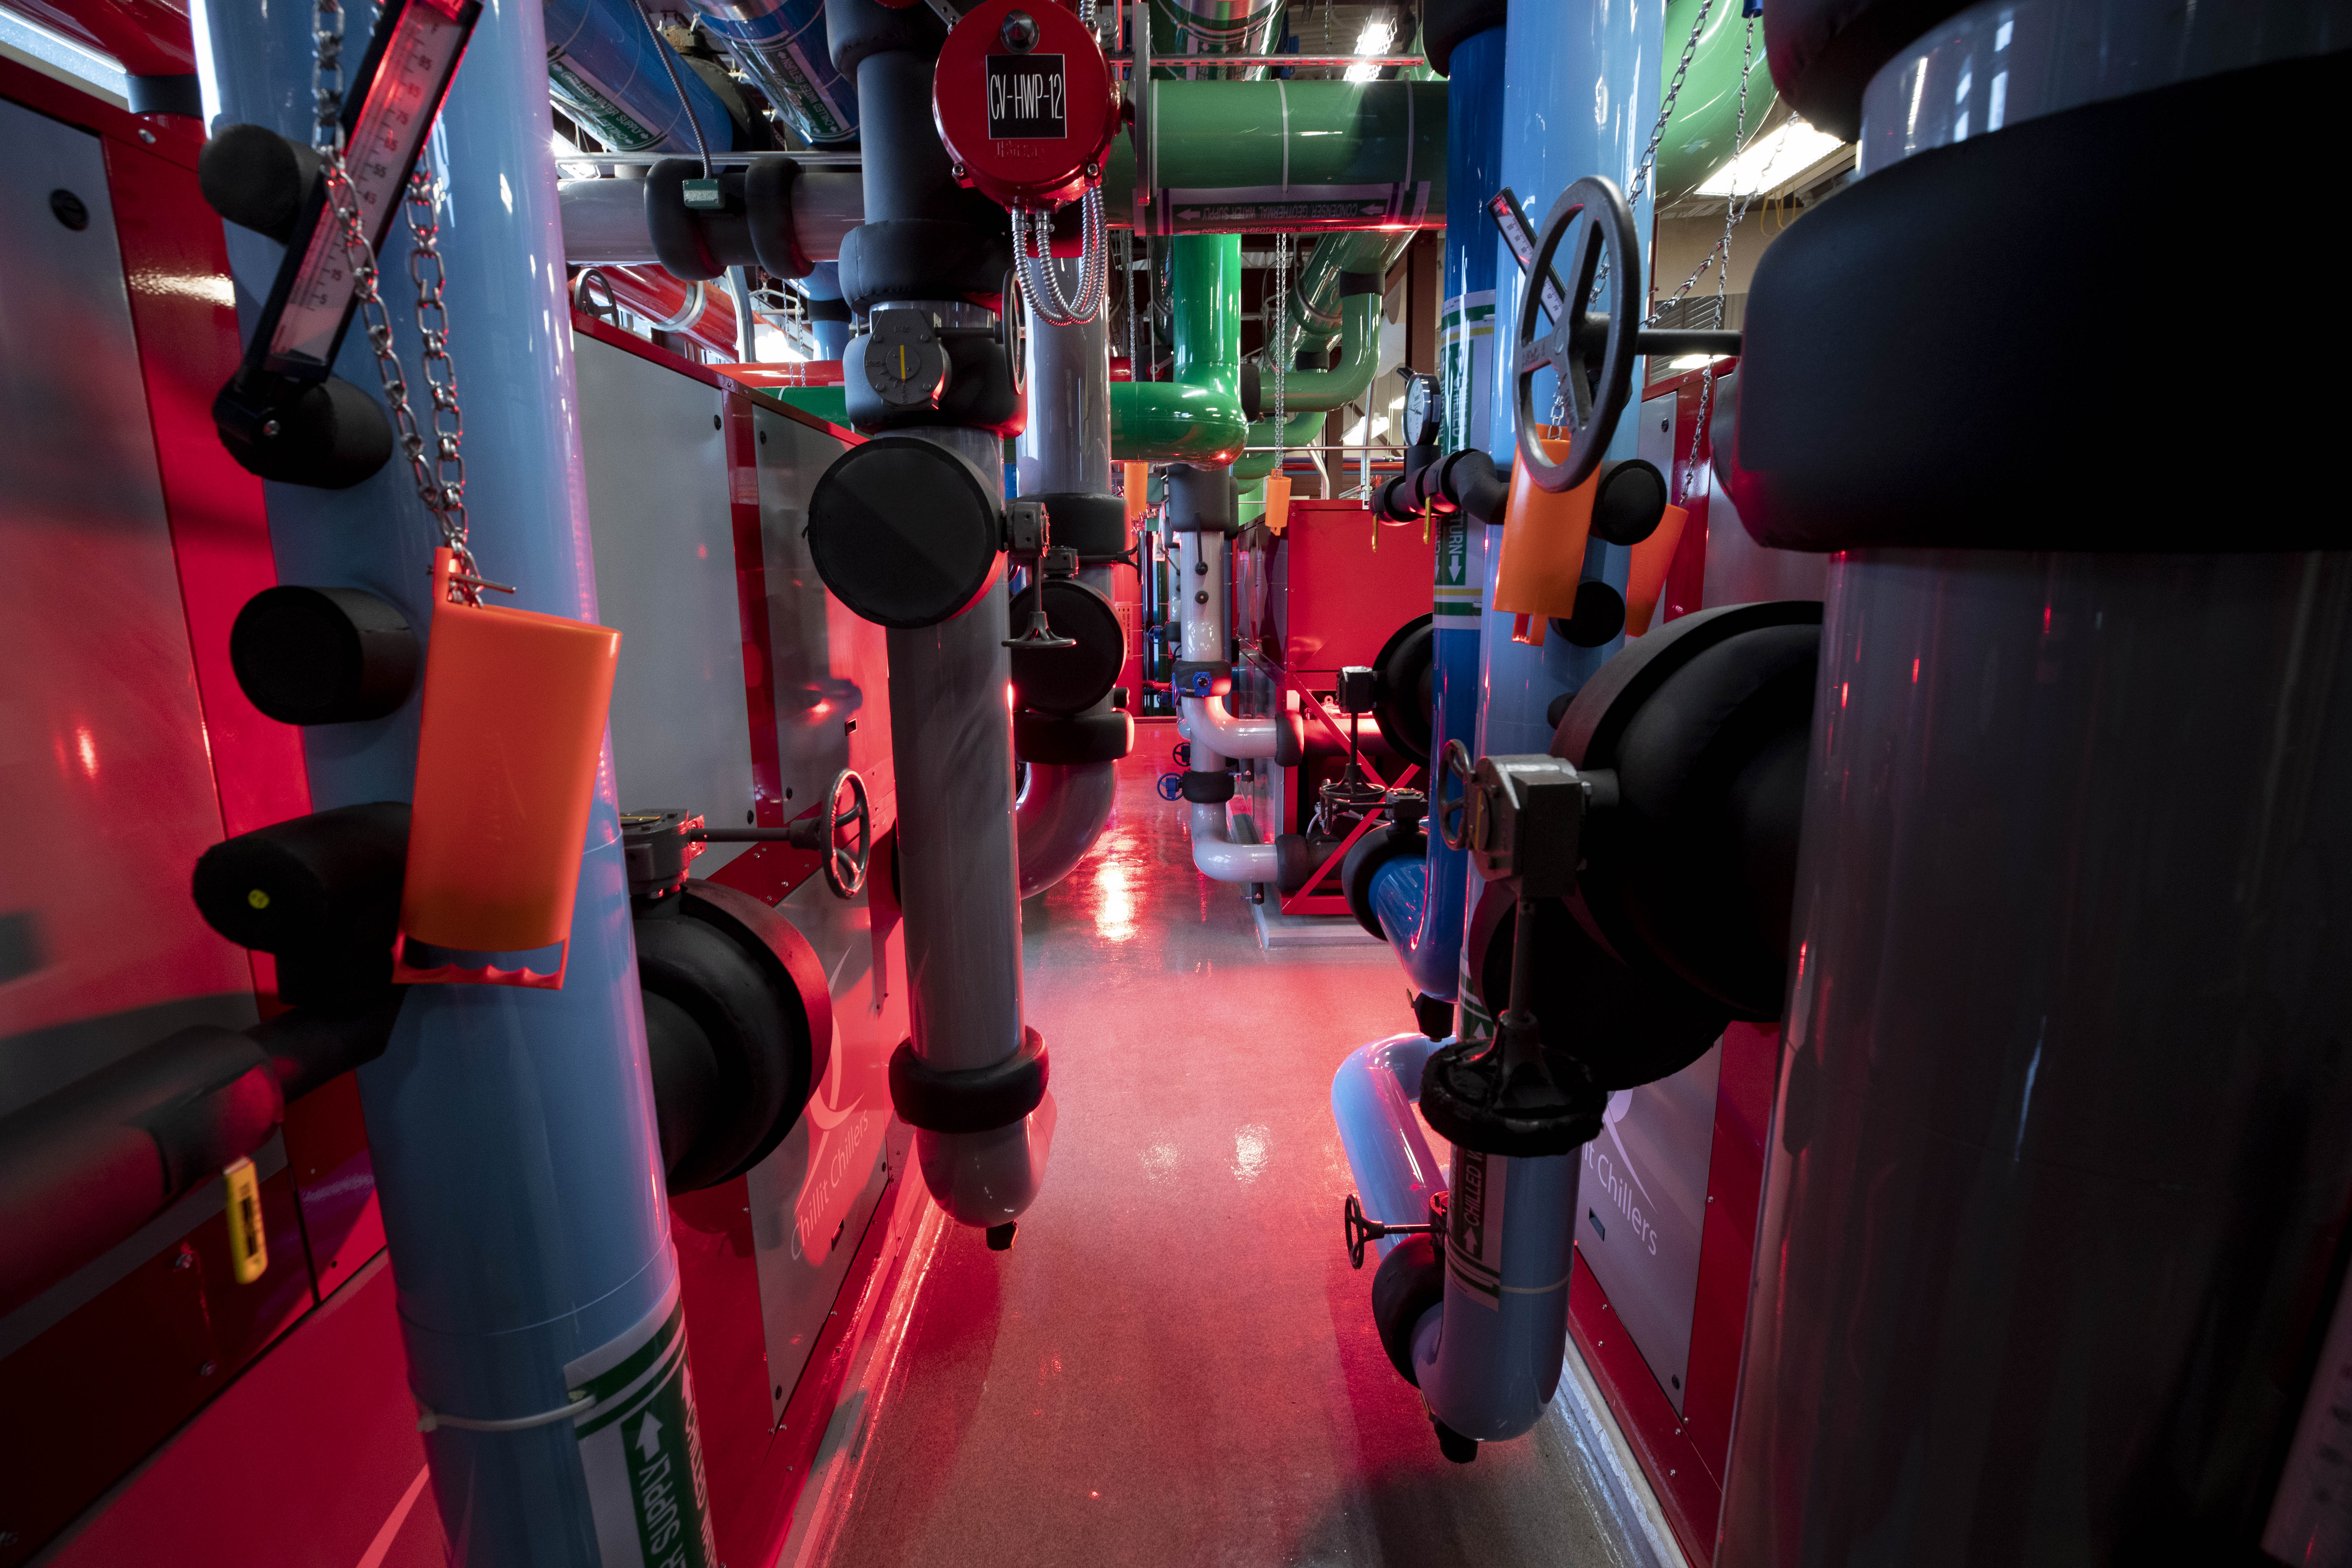 A view inside the geothermal energy plant at Miami University in Ohio.